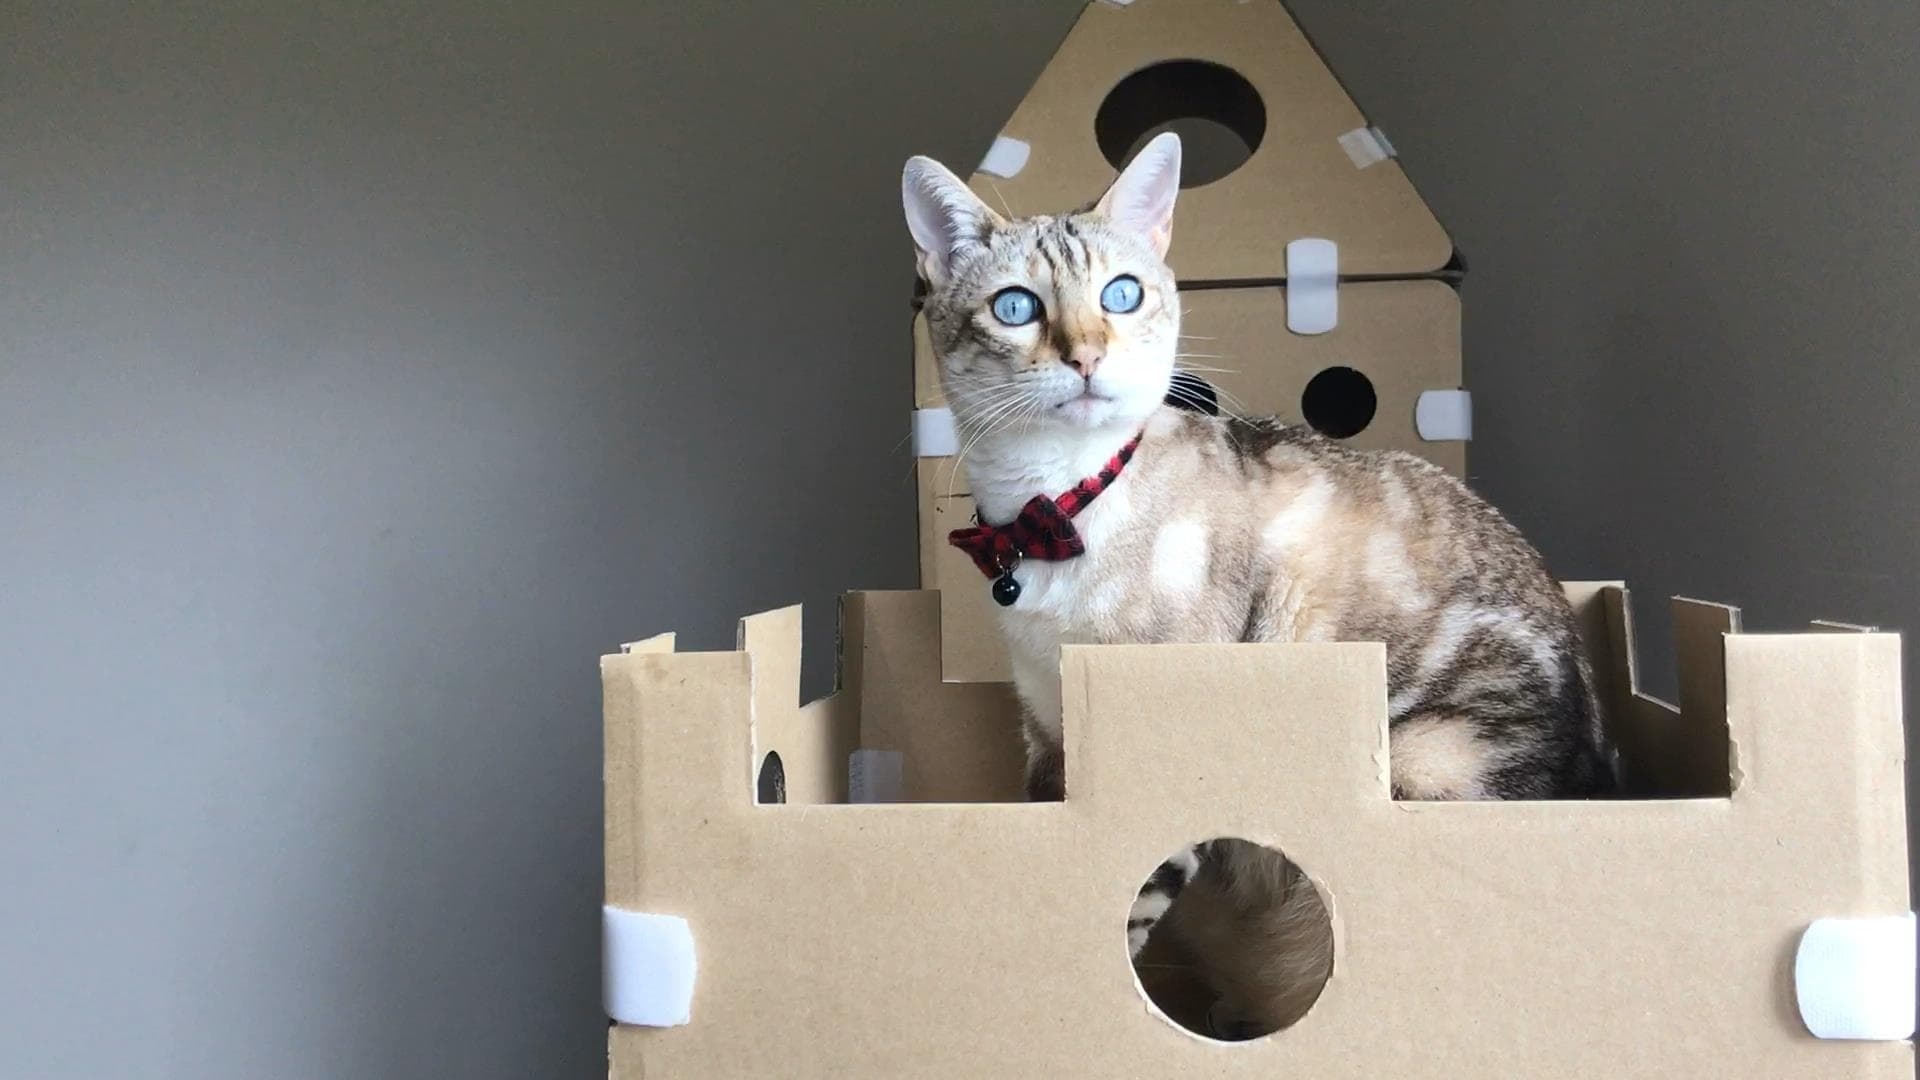 Diy cardboard box homes and towers for cats purrfect love for Castle cat tower